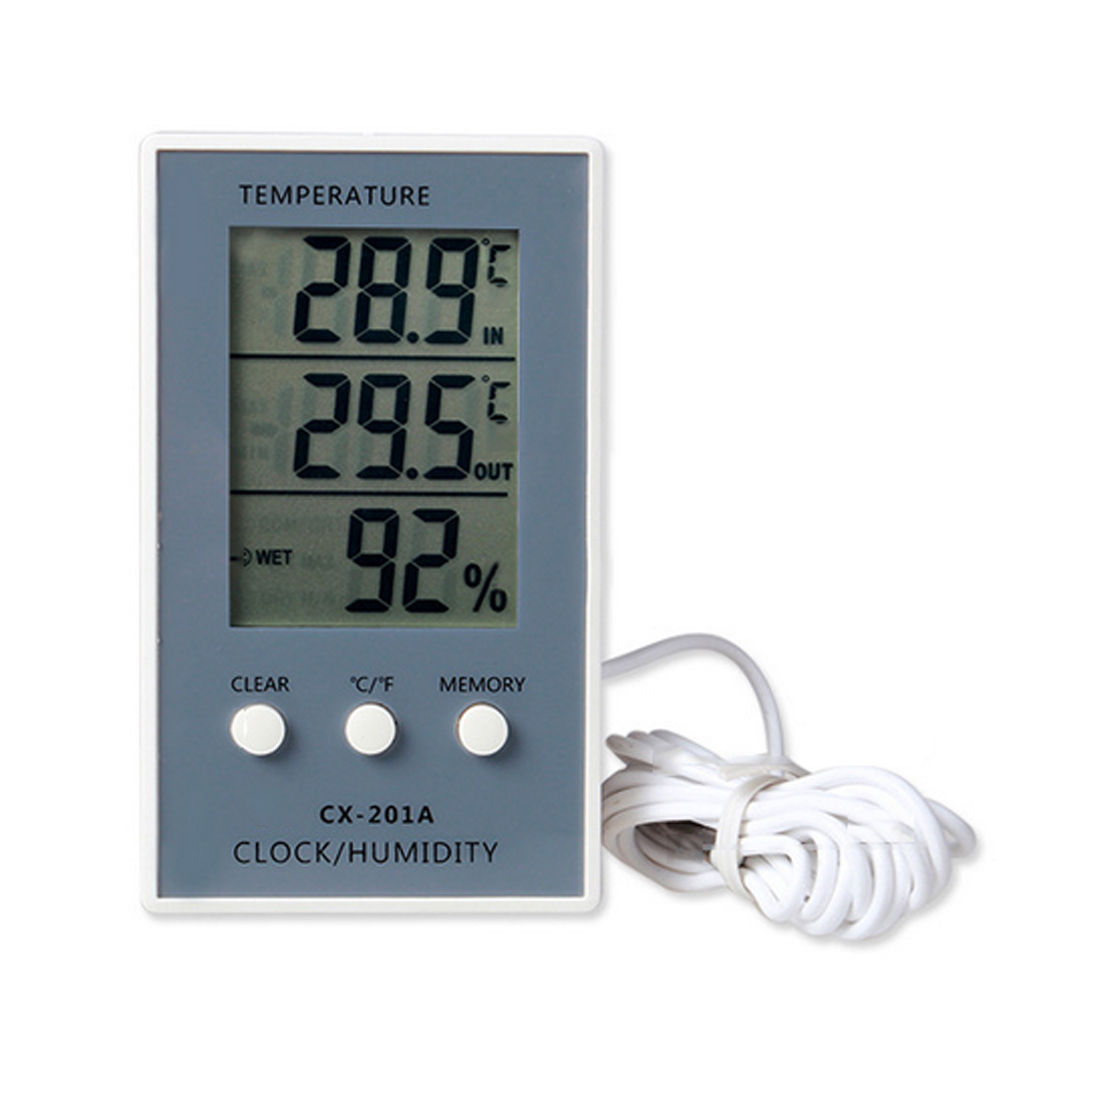 Digital Thermometer Hygrometer Indoor Outdoor Temperature Humidity Meter C/F LCD Display Sensor Probe Weather Station 0 56 red blue dual display digital led thermometer temperature meter waterproof metal probe sensor module 20 100 celsius